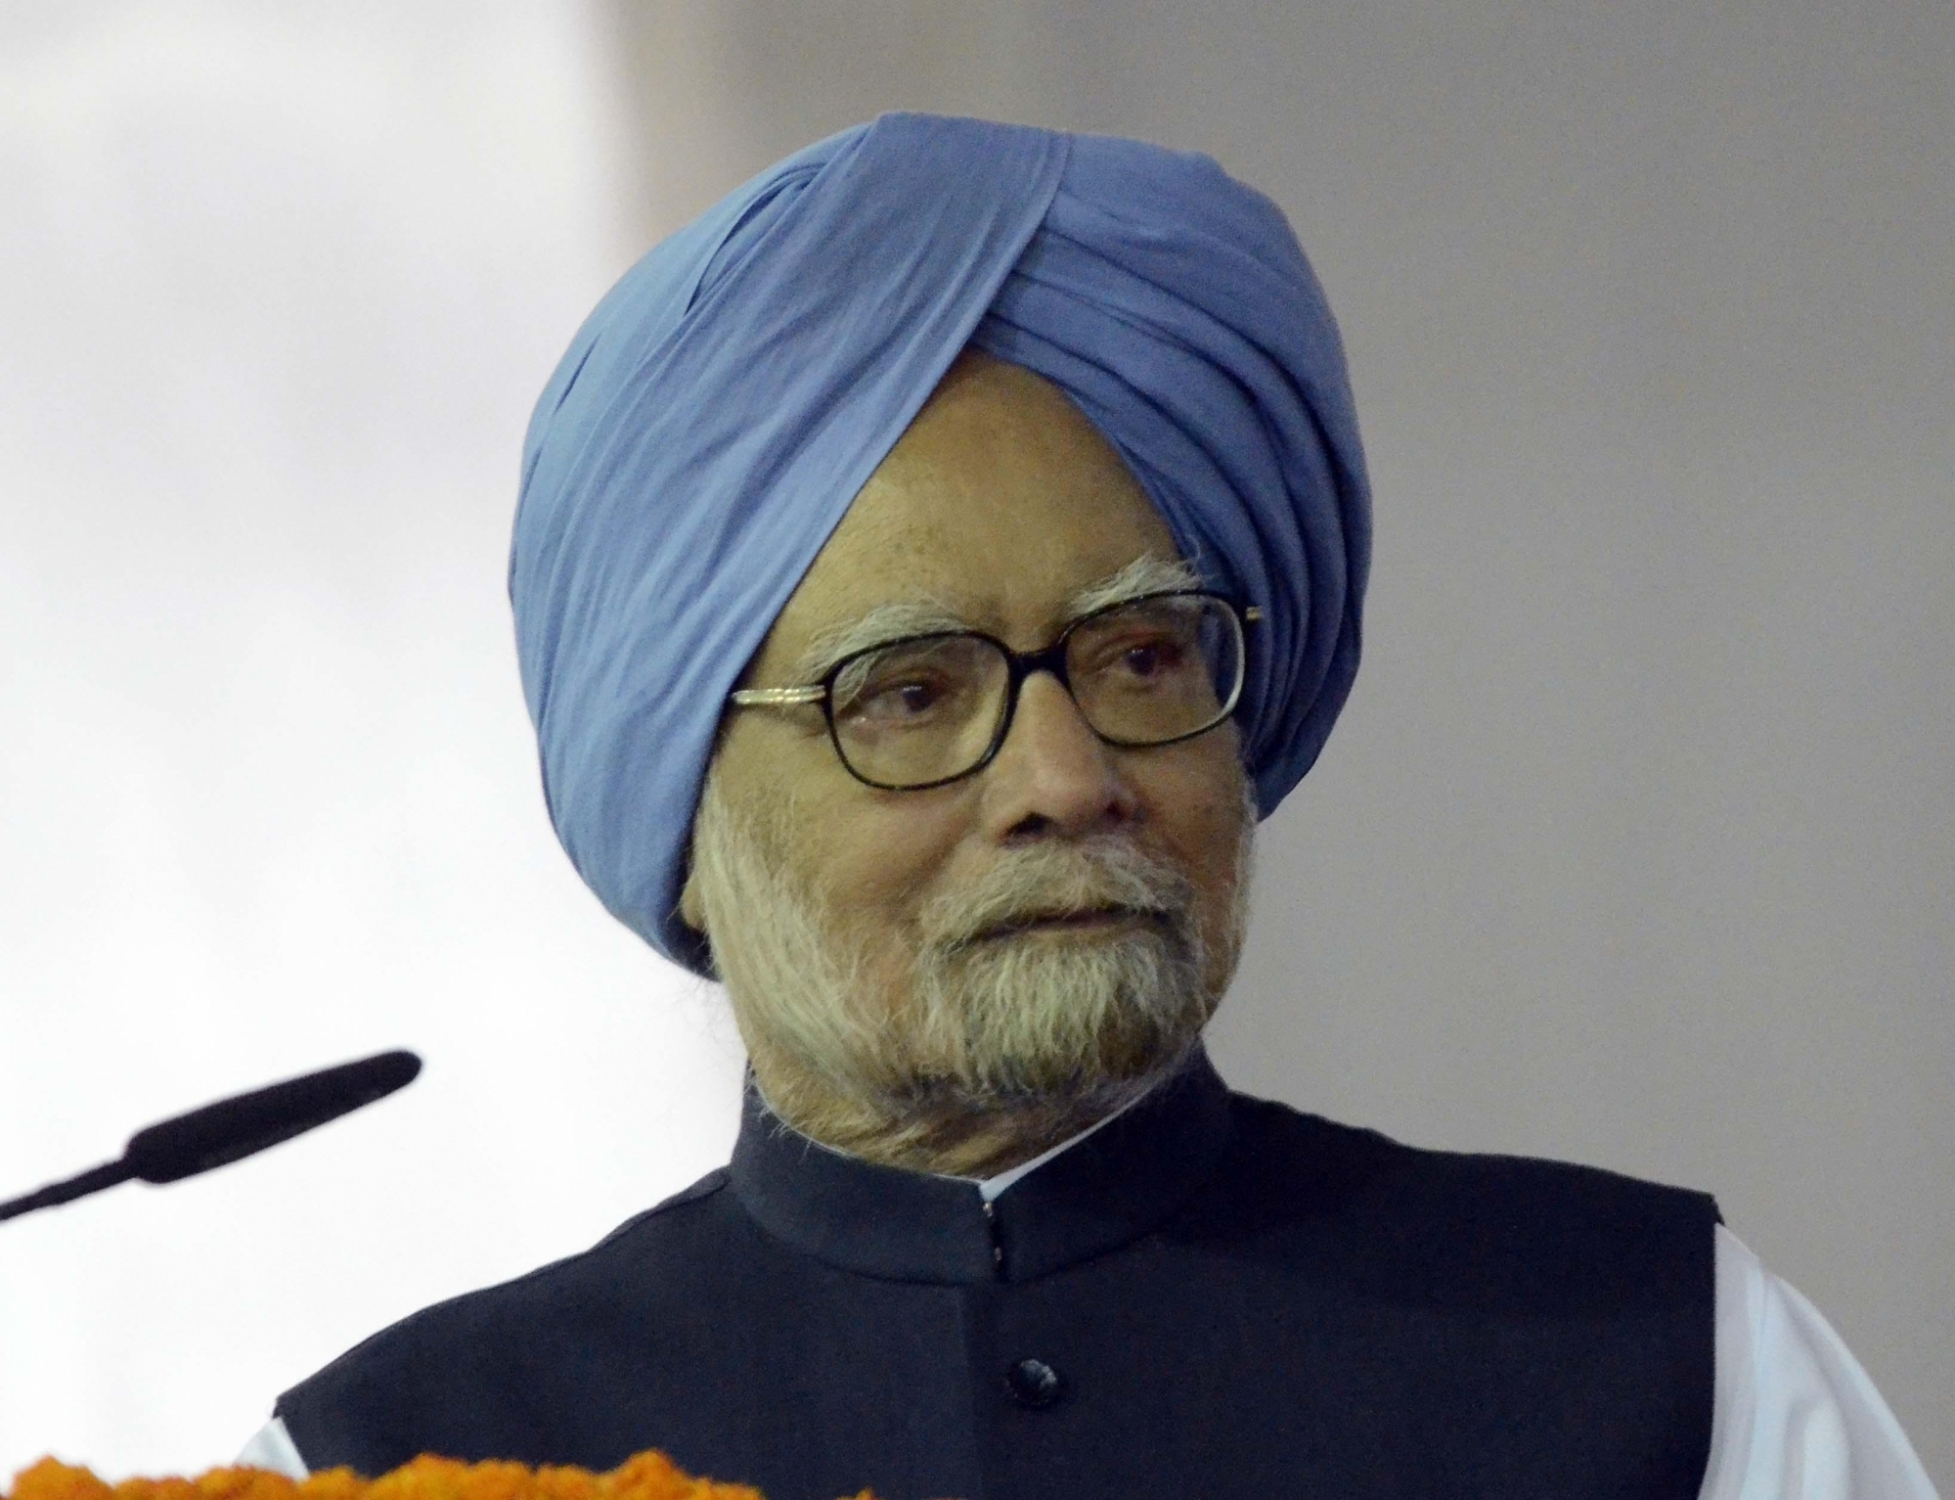 Manmohan singh says Disinformation is no substitute for diplomacy